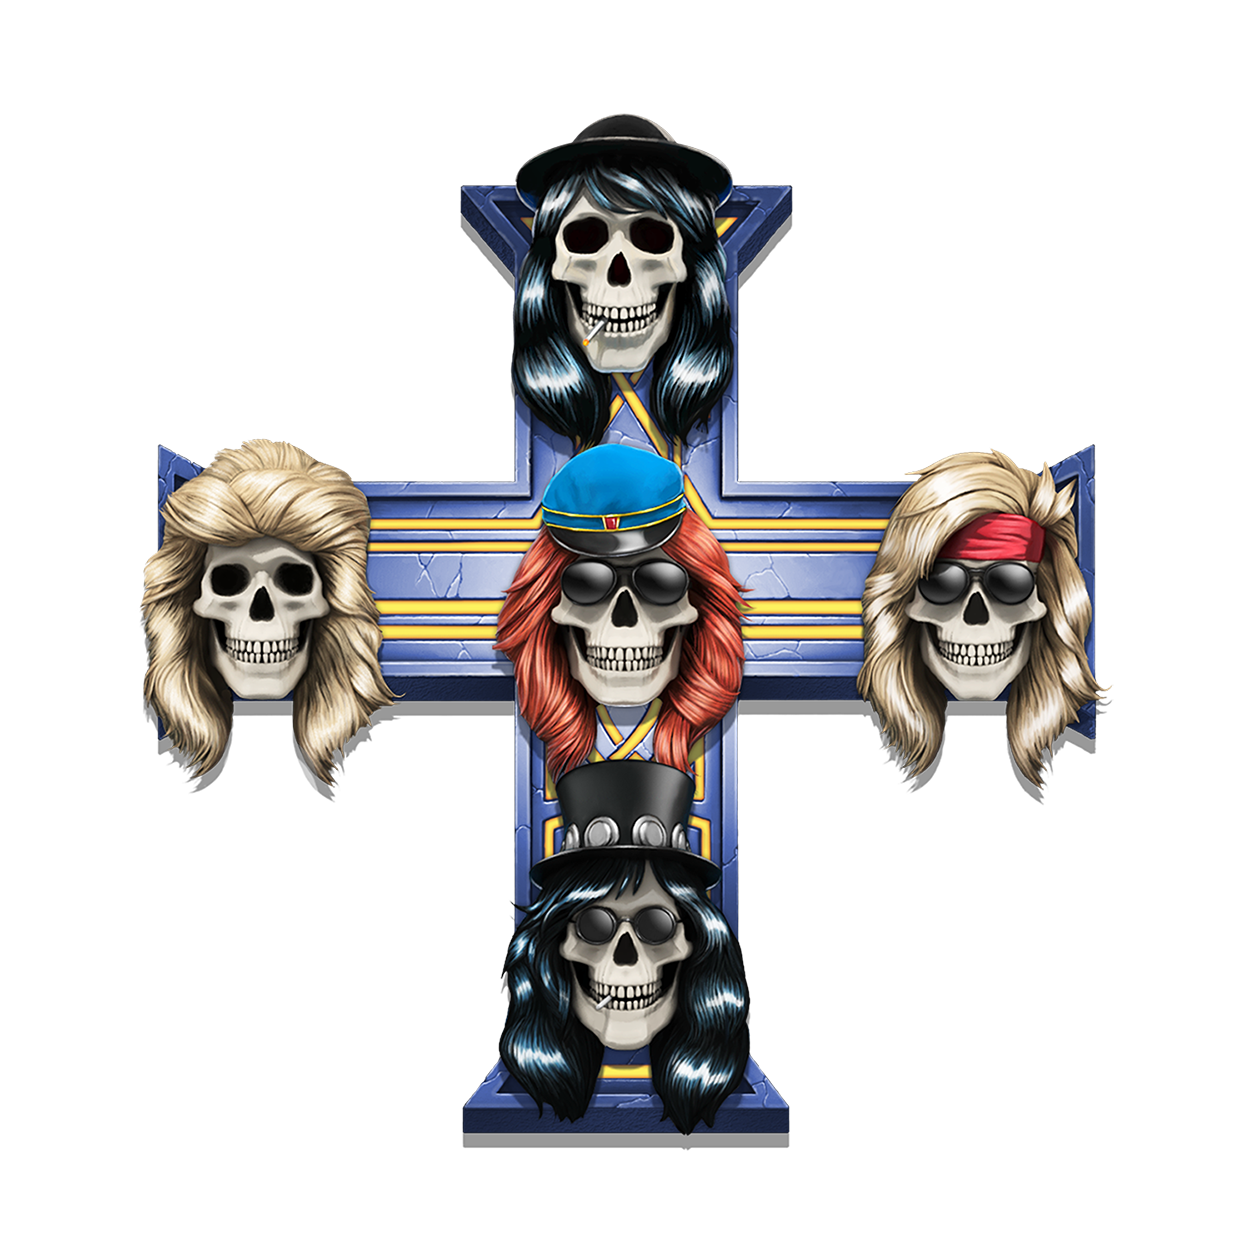 Guns N' Roses spilleautomat Appetite for destruction symbol norske casino